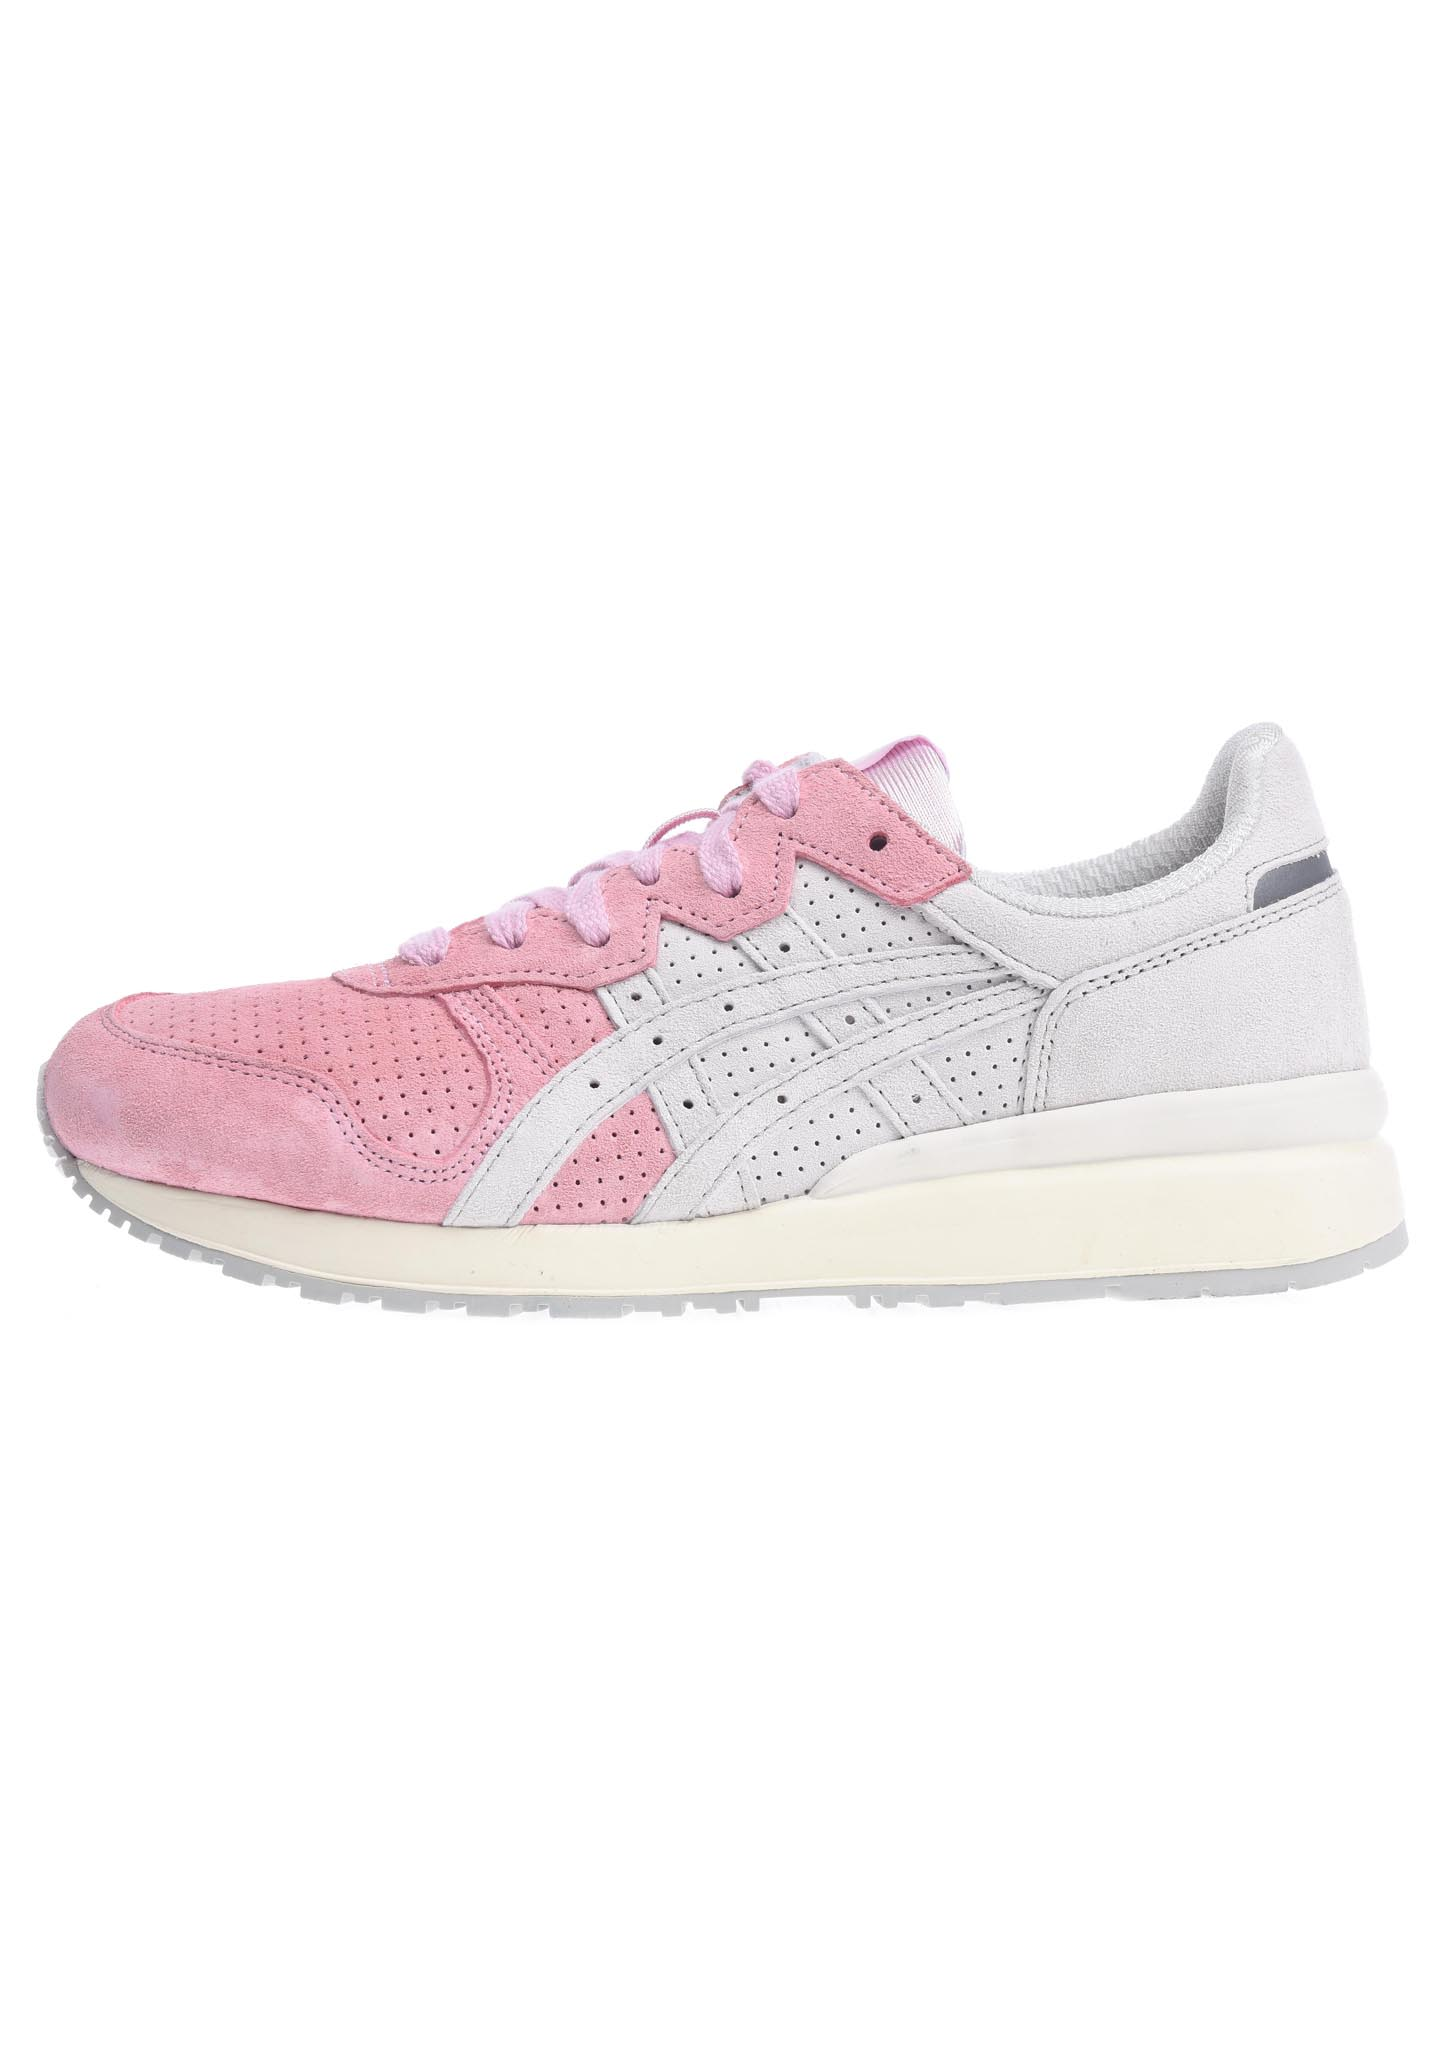 006eaa3f937 Onitsuka Tiger Tiger Ally - Zapatillas - Rosa - Planet Sports